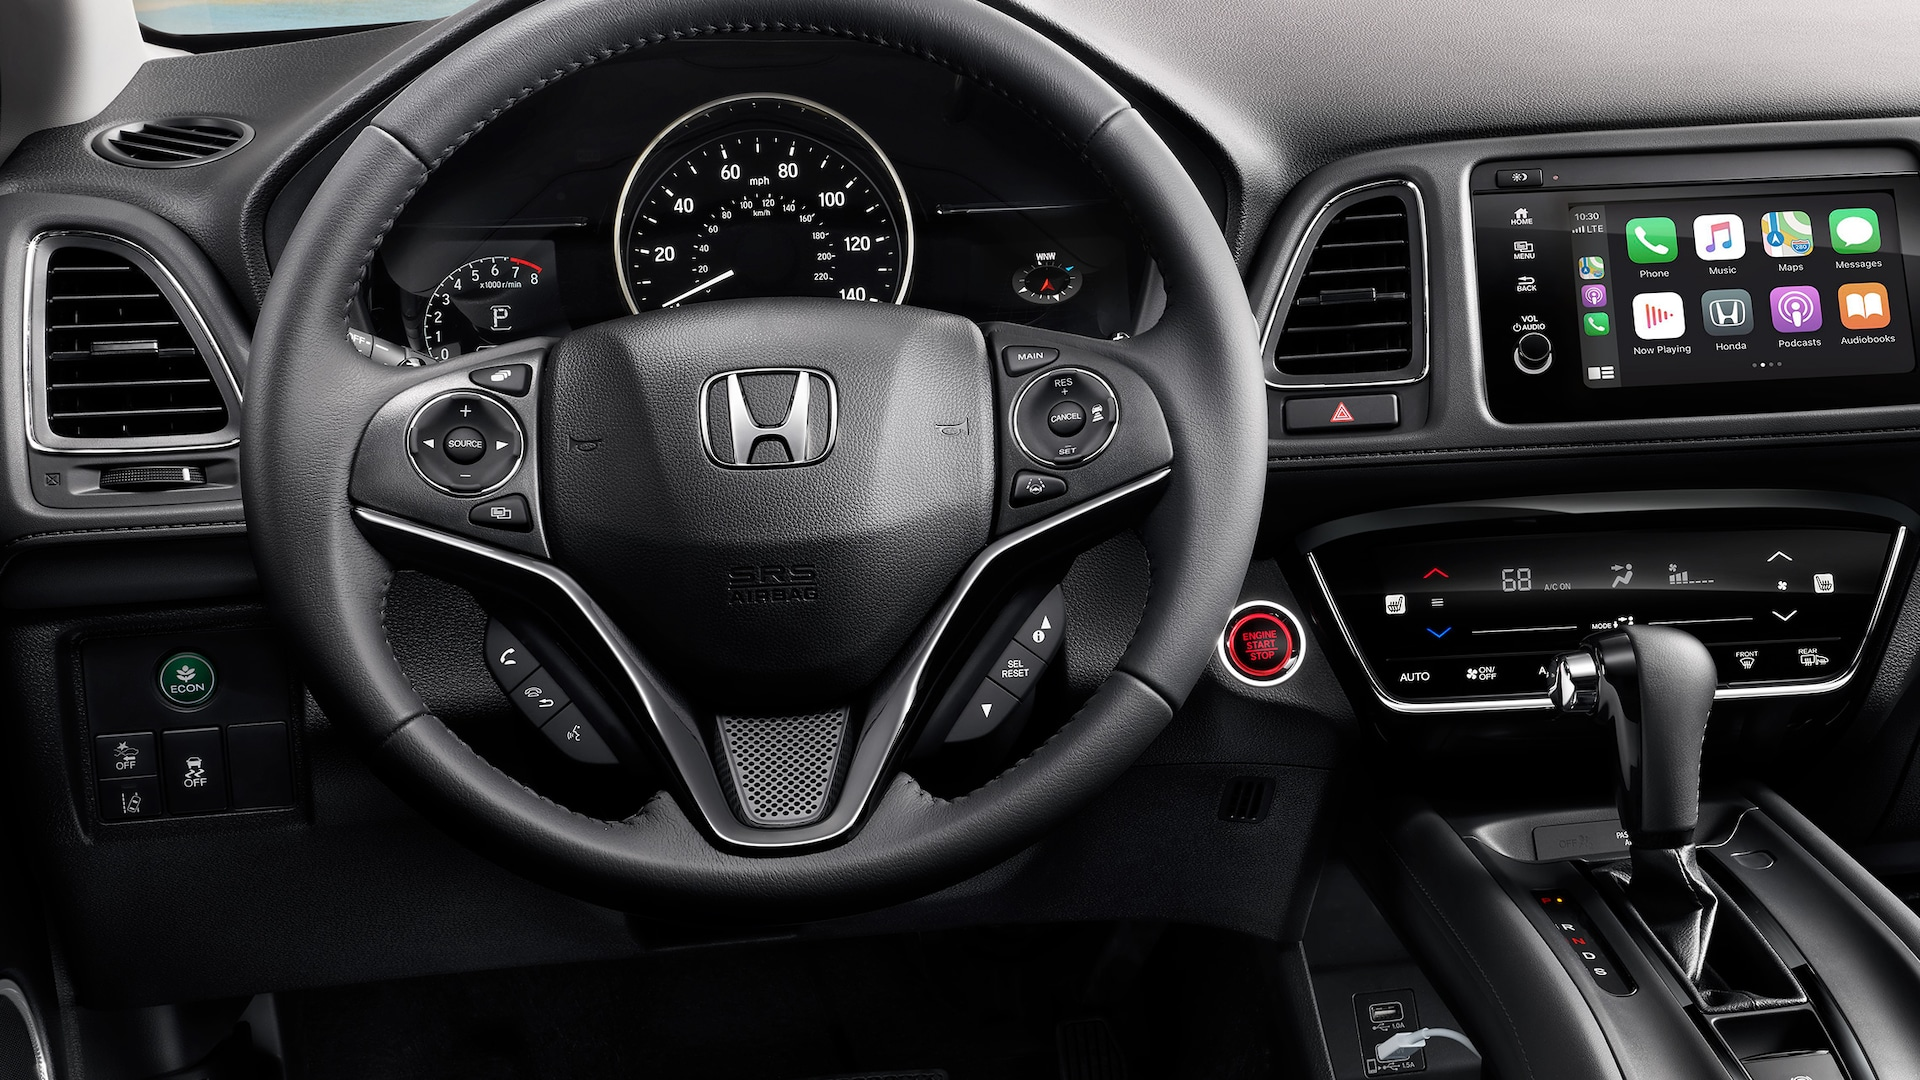 Interior cabin view of instrument panel in the 2021 Honda HR-V EX-L with Black Leather.